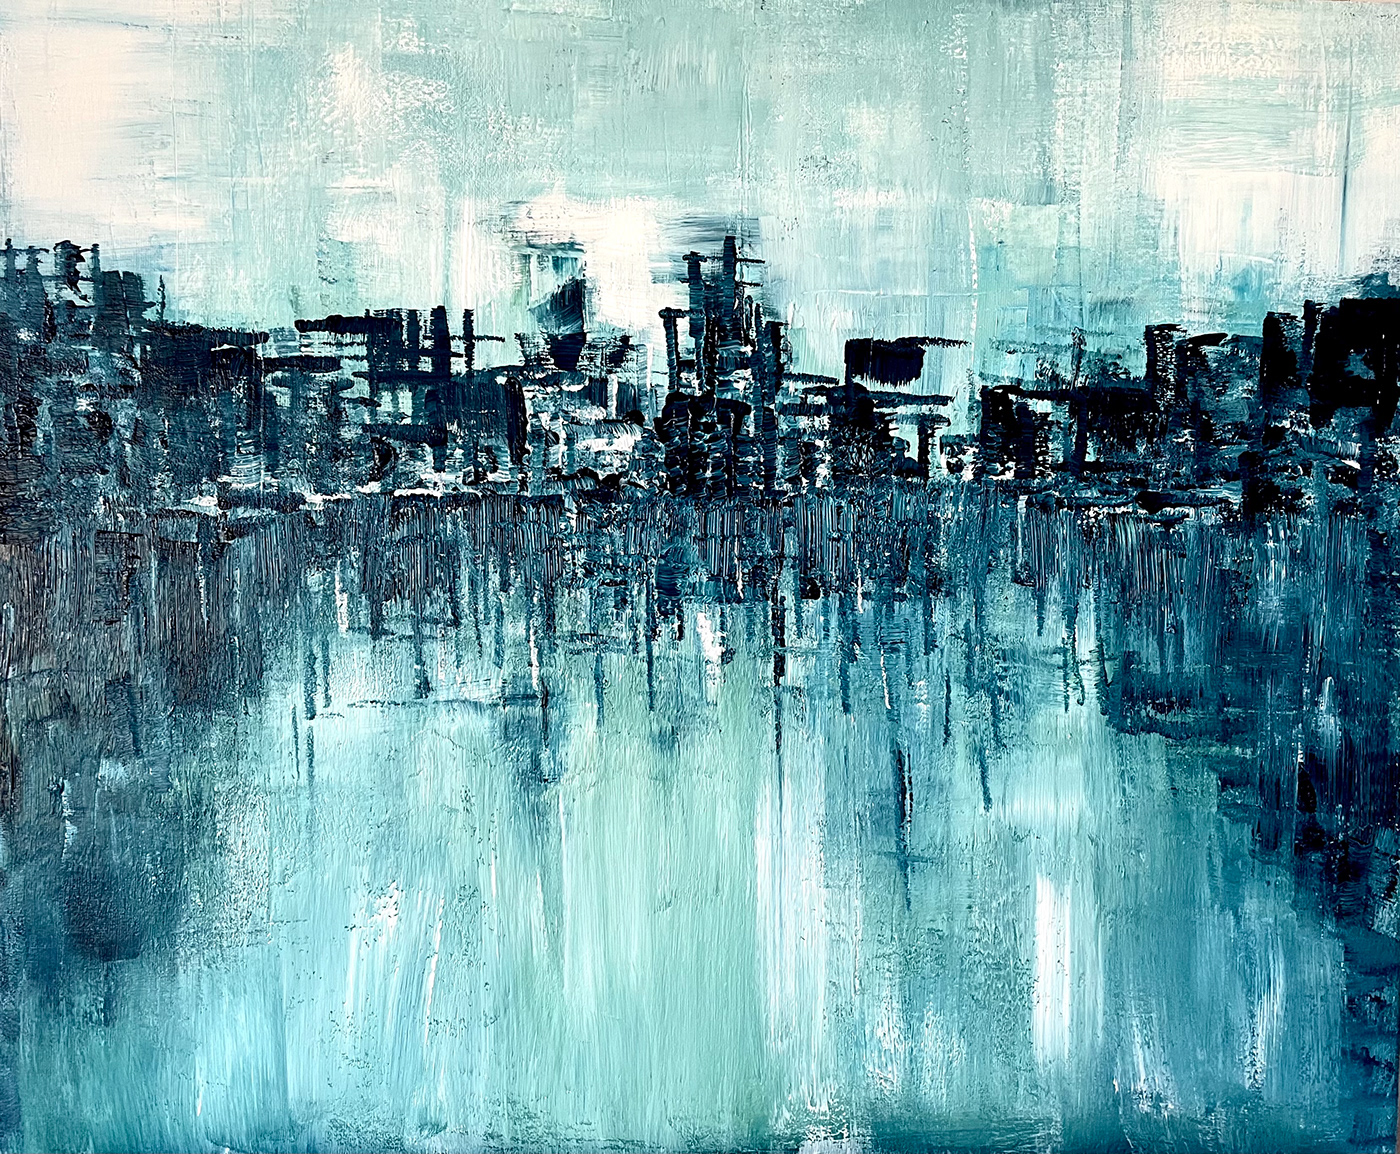 abstract city cityscape Colourful  Dystopia Dystopian Landscape lights neon night reflection Semi Abstract Street streetscape tokyo water